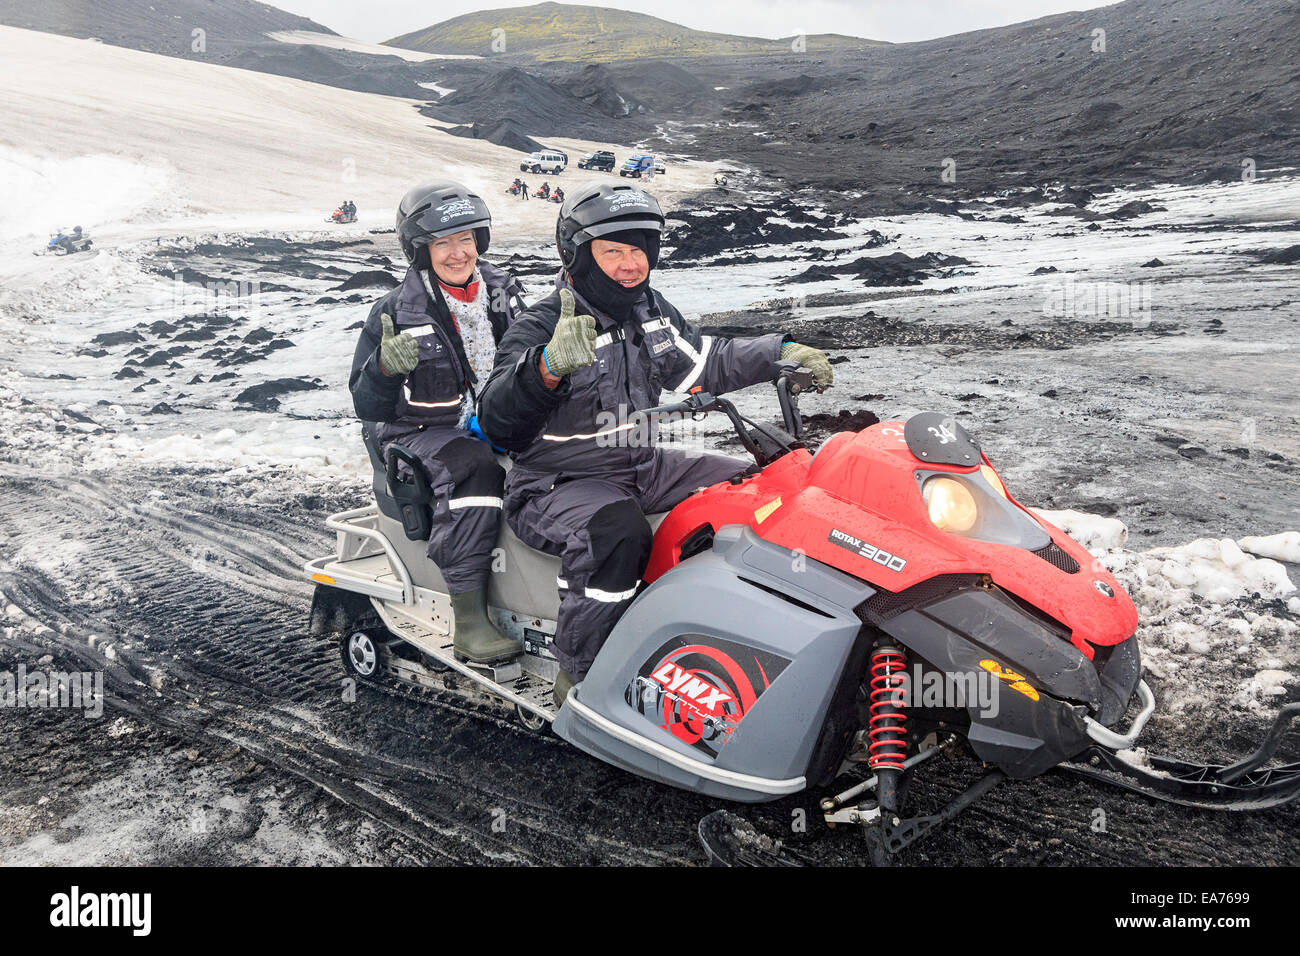 Snowmobiling on Mýrdalsjökull, a glacier in the south of Iceland. - Stock Image